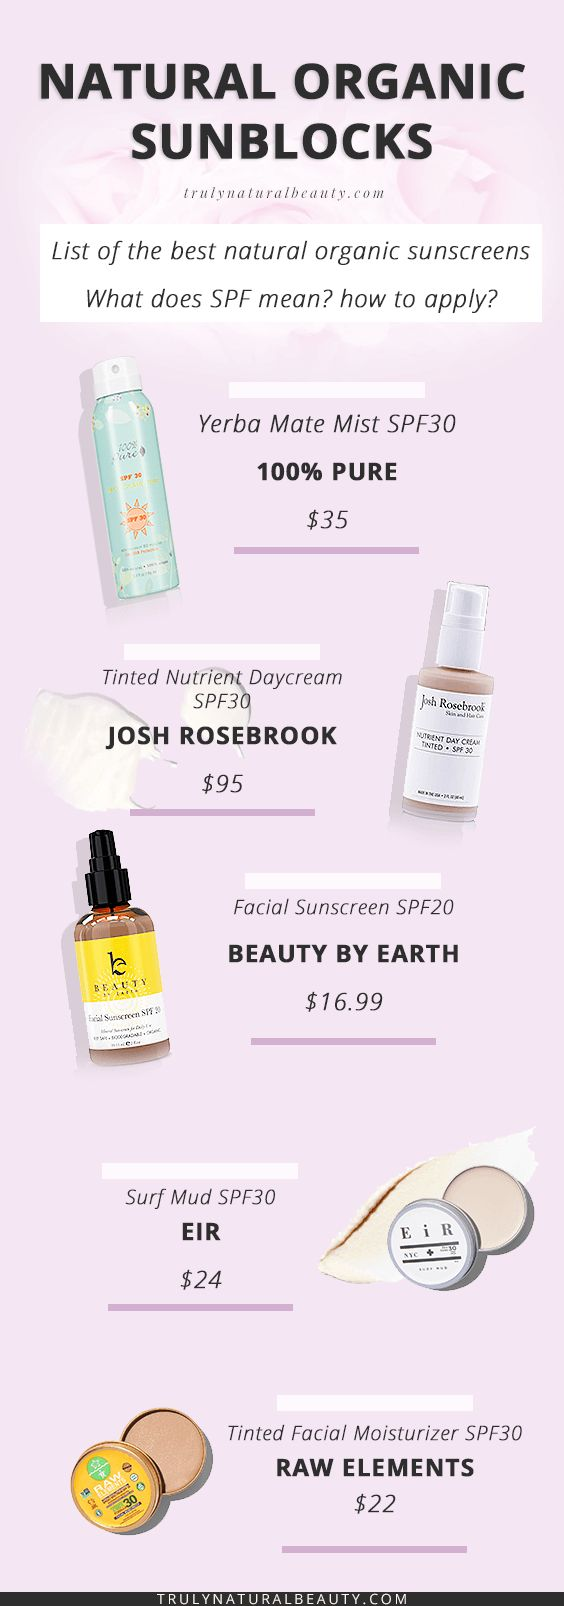 Organic Natural Sunscreens, what is SPF?